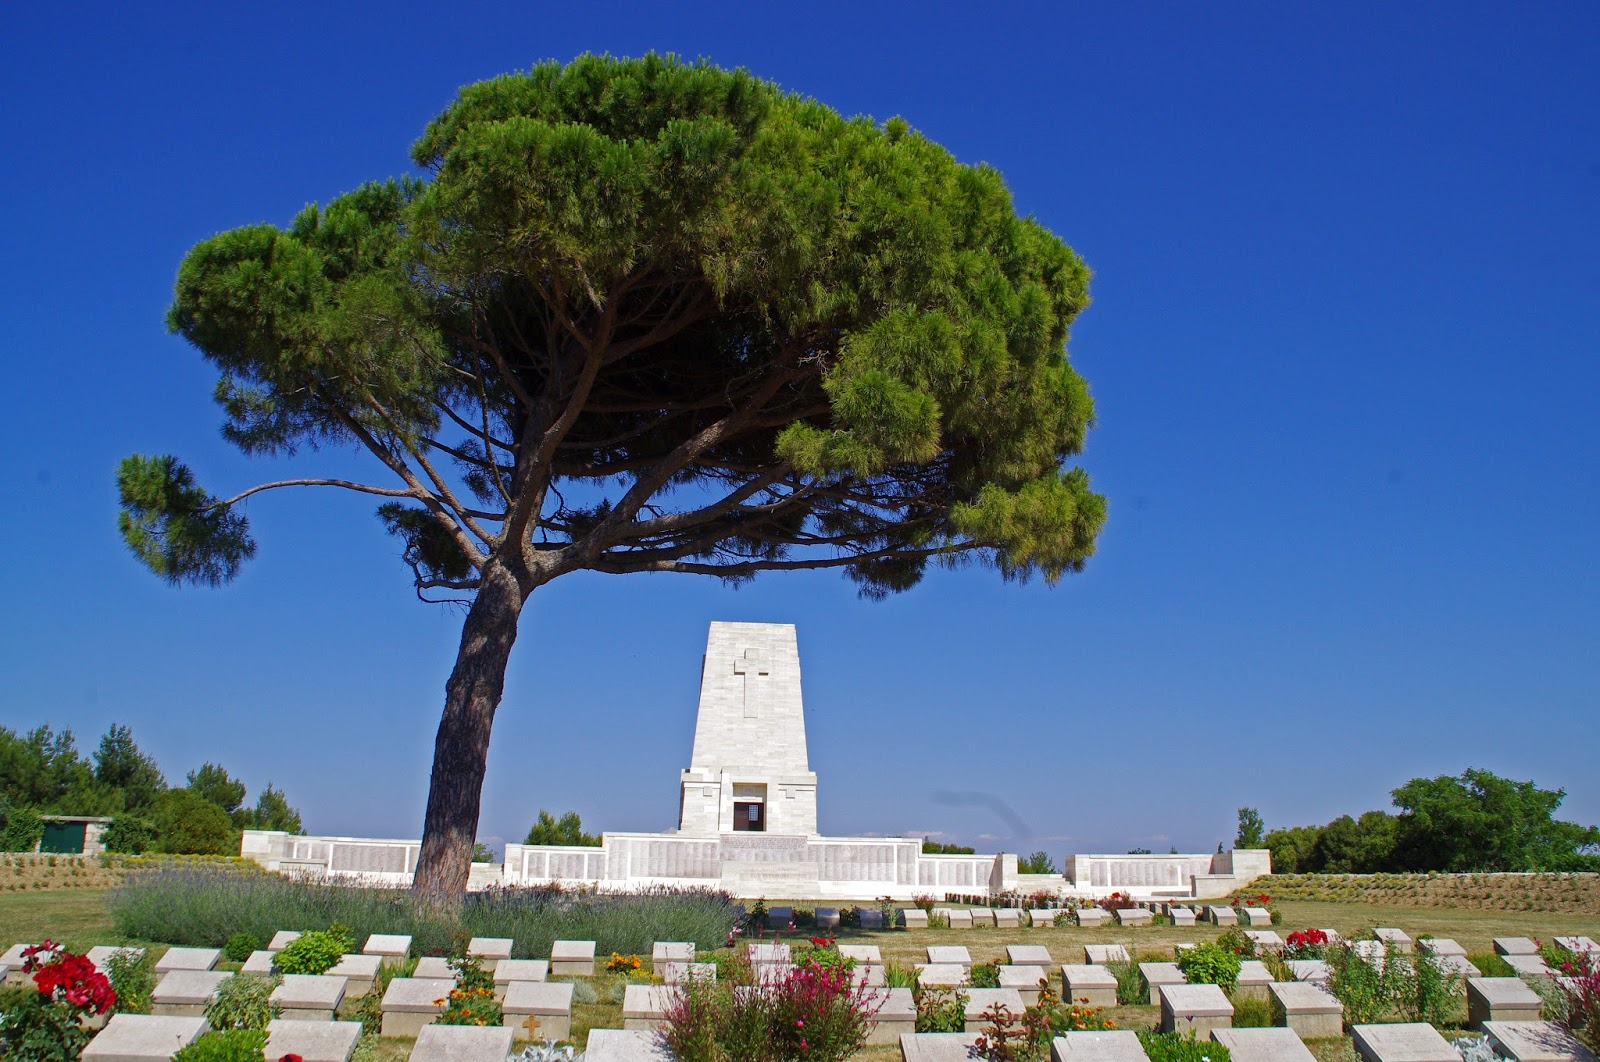 Lone Pine Memorial Gallipoli